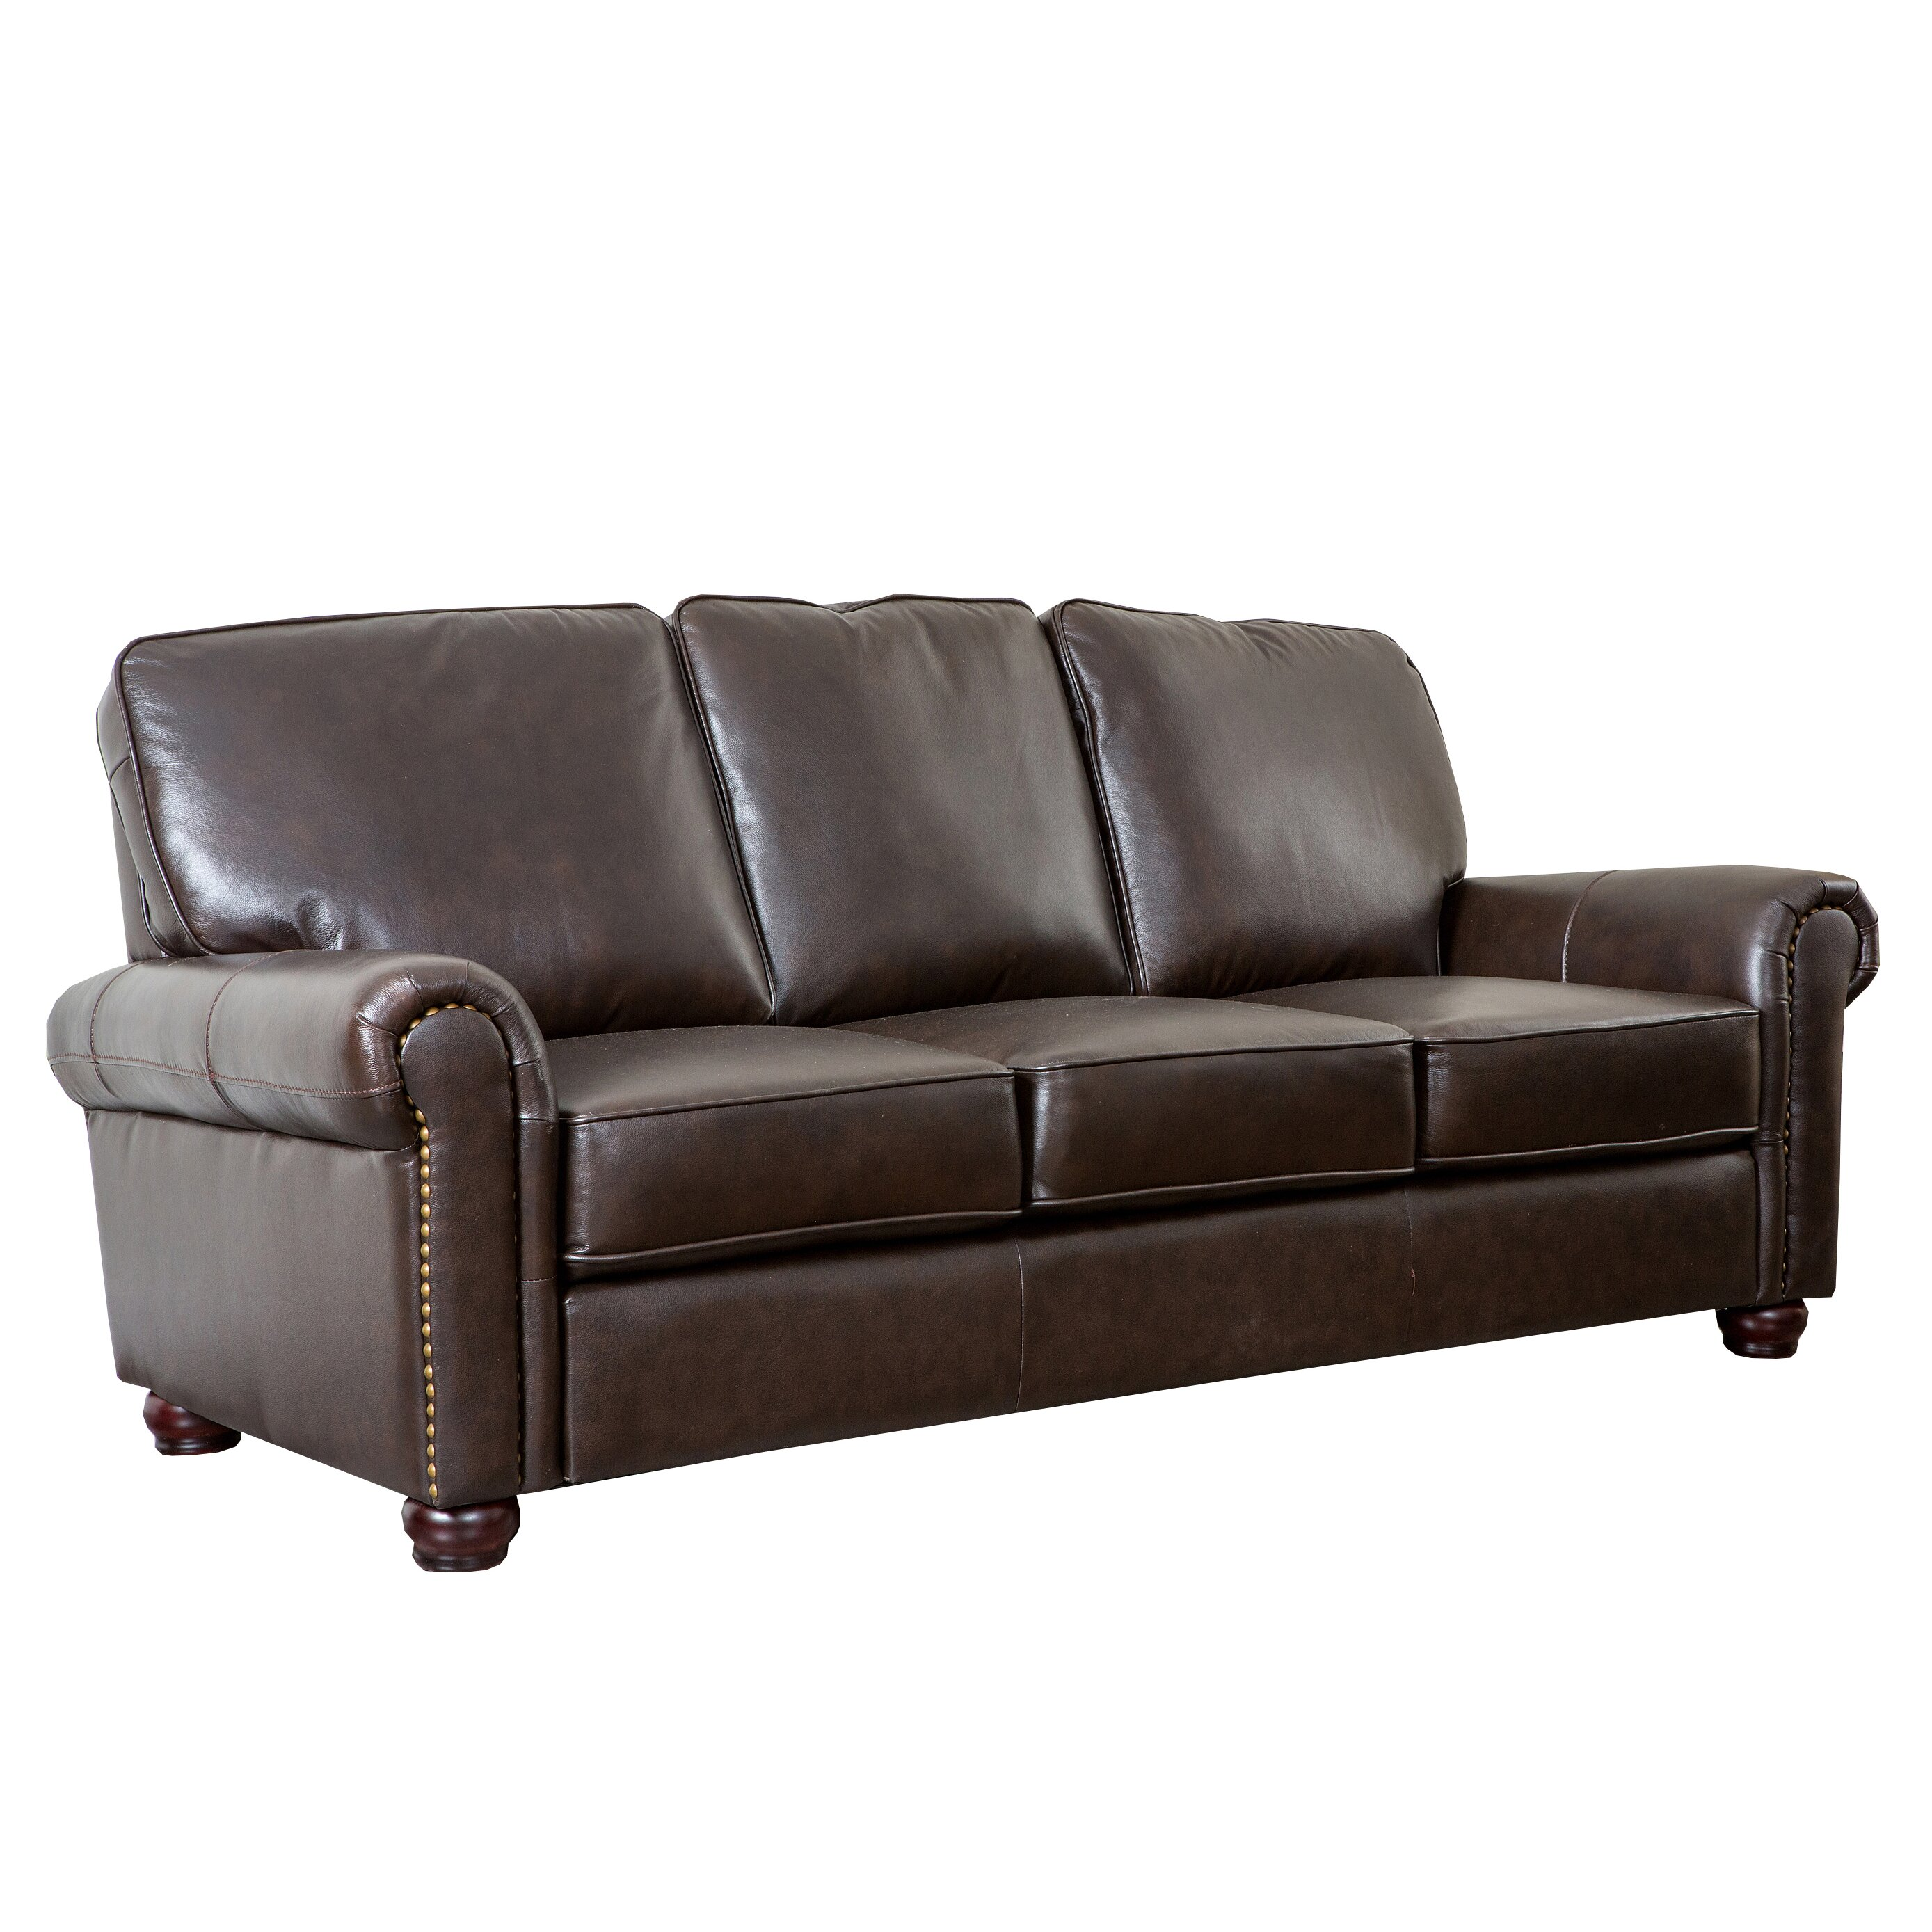 Darby home co coggins leather sofa reviews wayfair for Leather sofa reviews